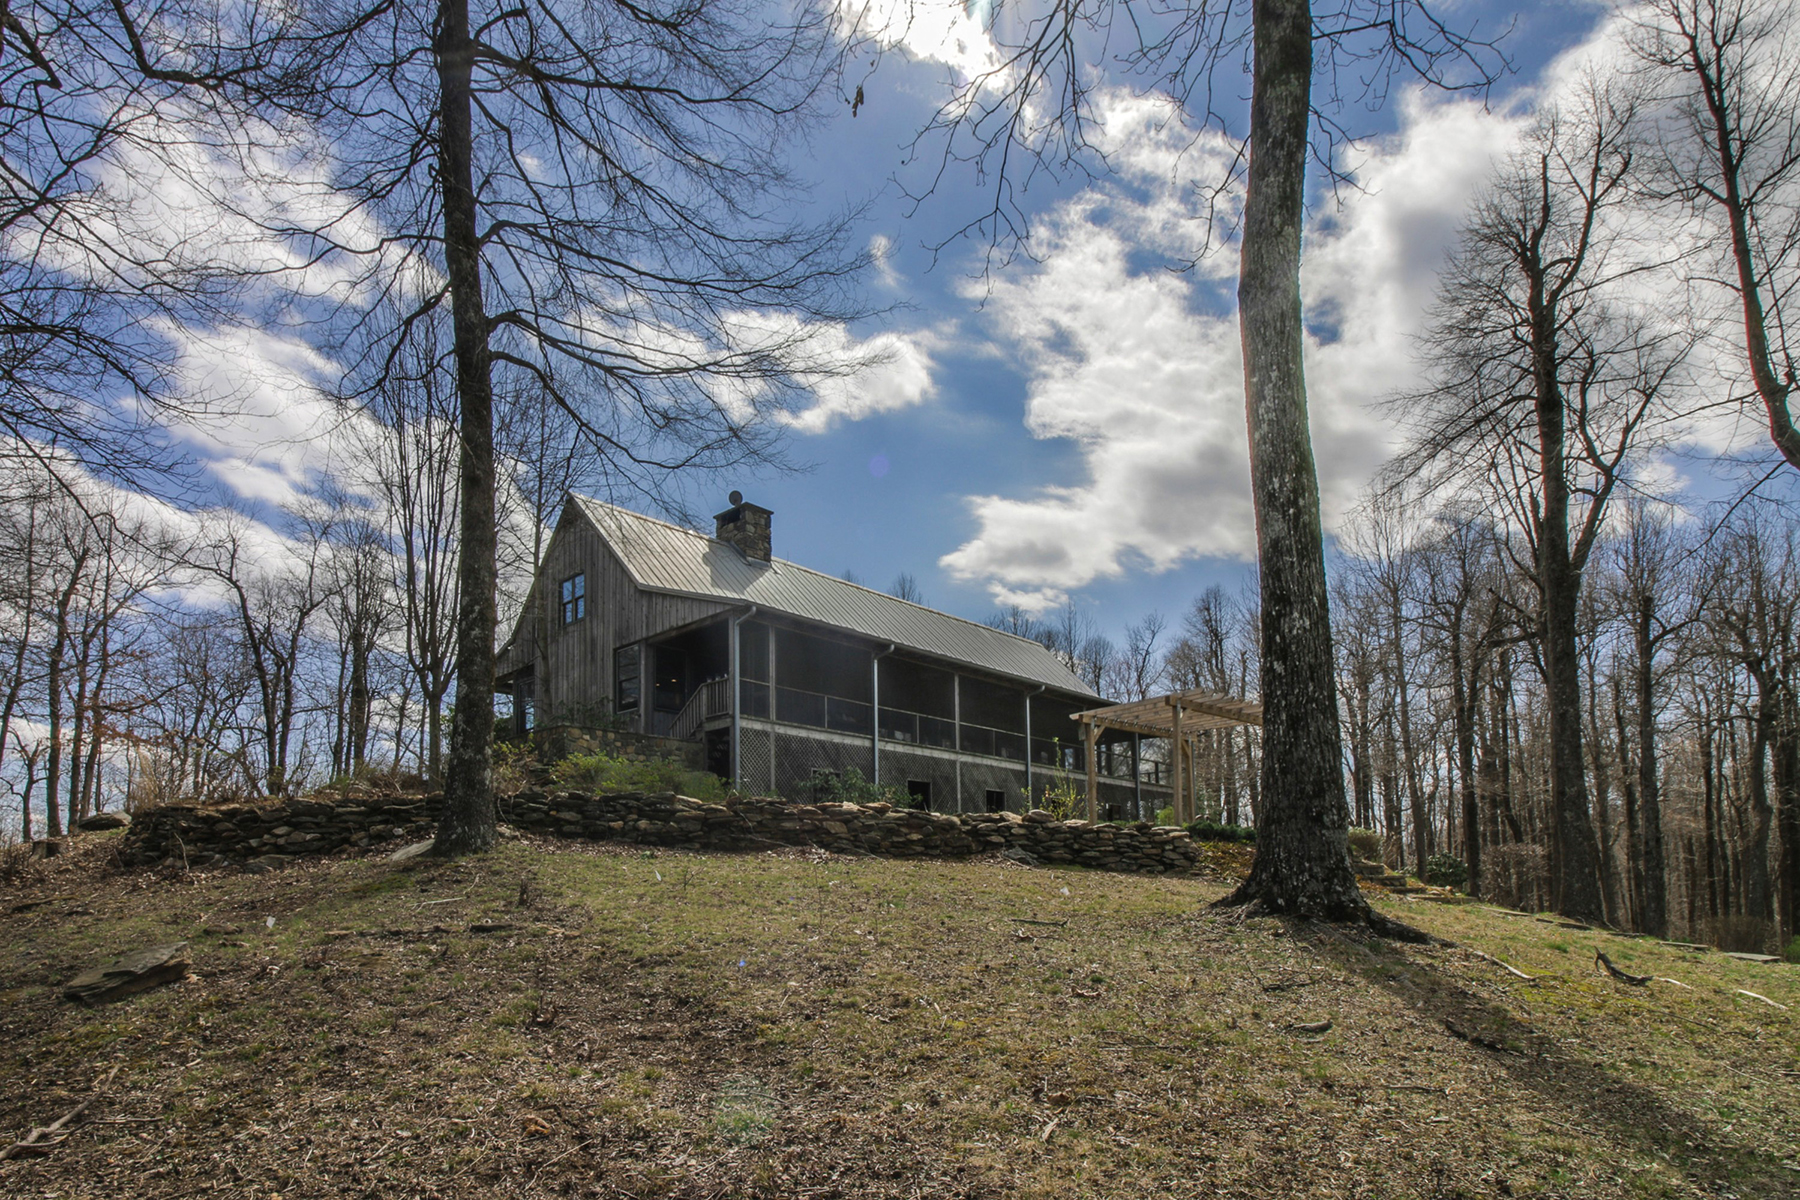 Single Family Home for Sale at TRYON 5042 Hogback Mountain Rd Tryon, North Carolina, 28782 United States